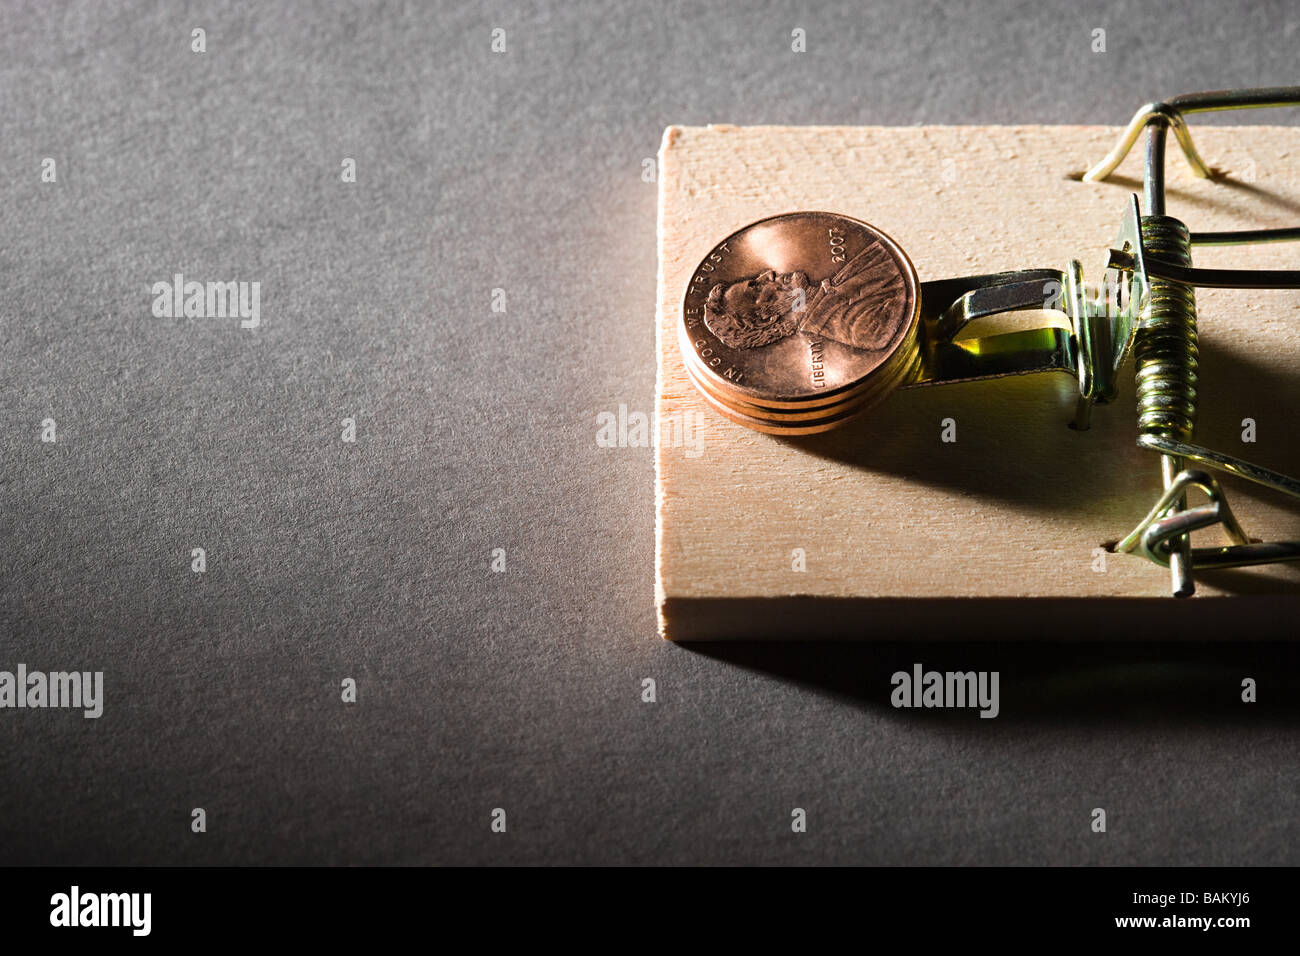 Coins on mousetrap Stock Photo